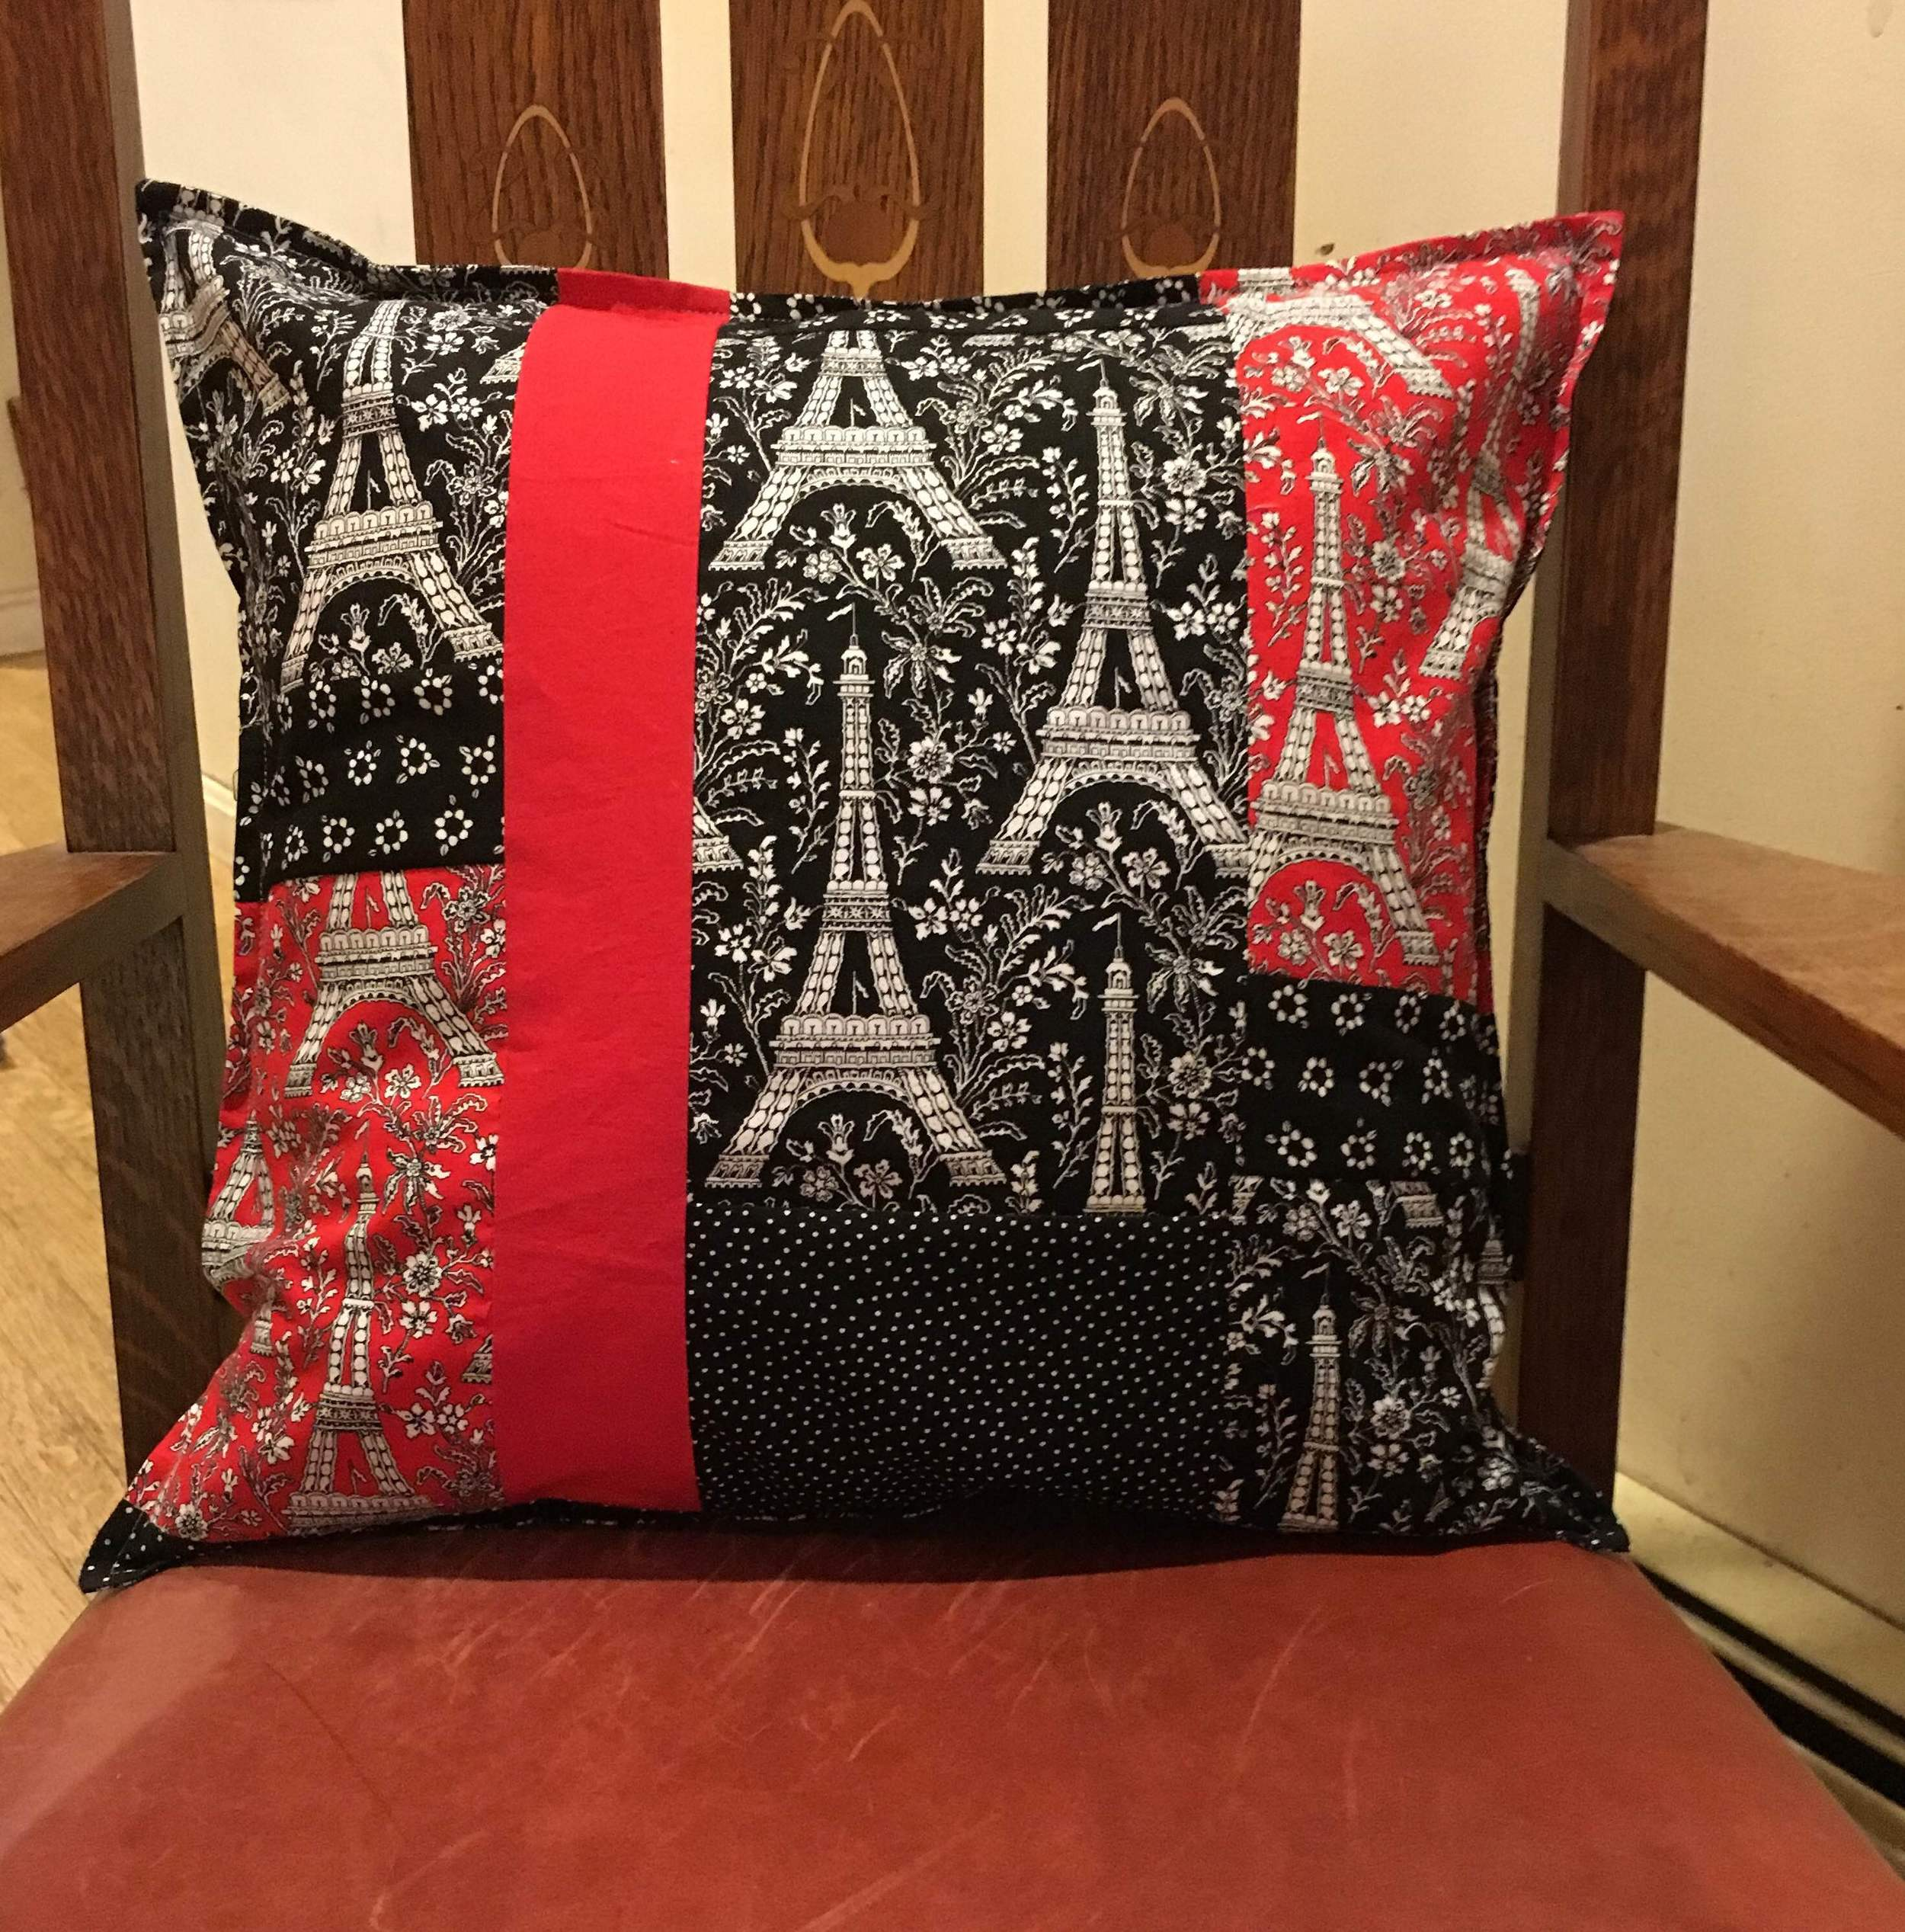 Eiffel Tower Pillow Cover 17 x 17 inches